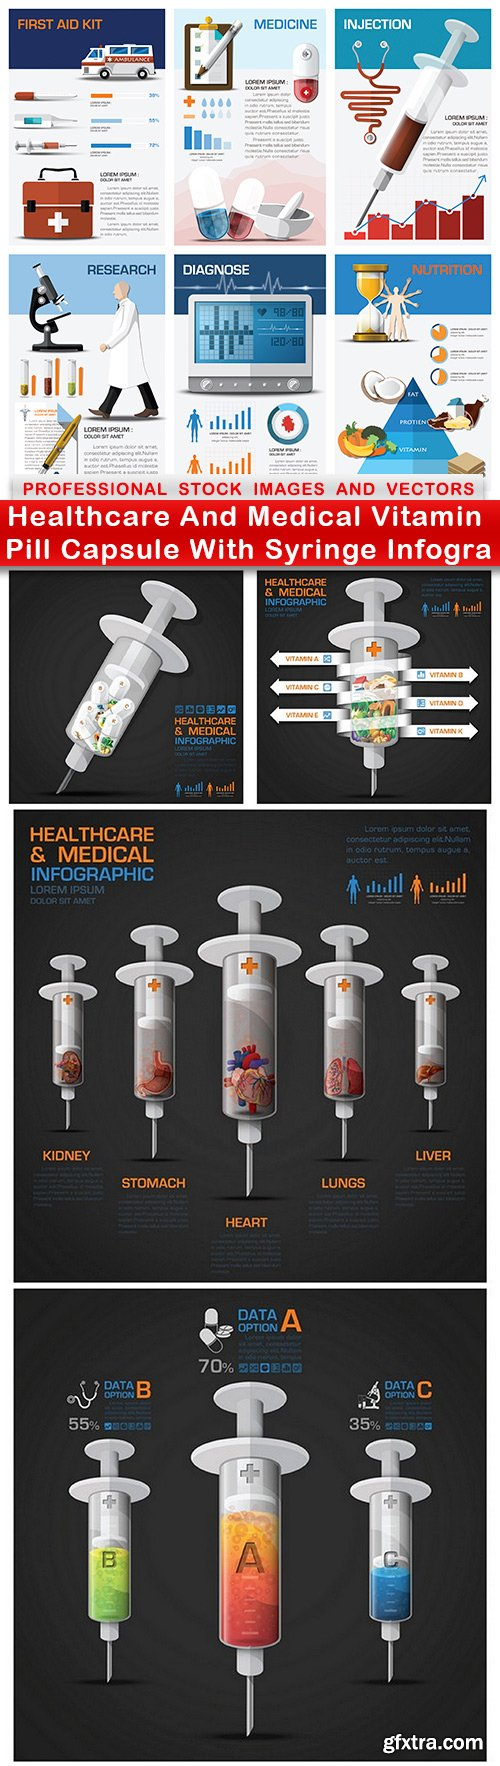 Healthcare And Medical Vitamin Pill Capsule With Syringe Infogra - 5 EPS